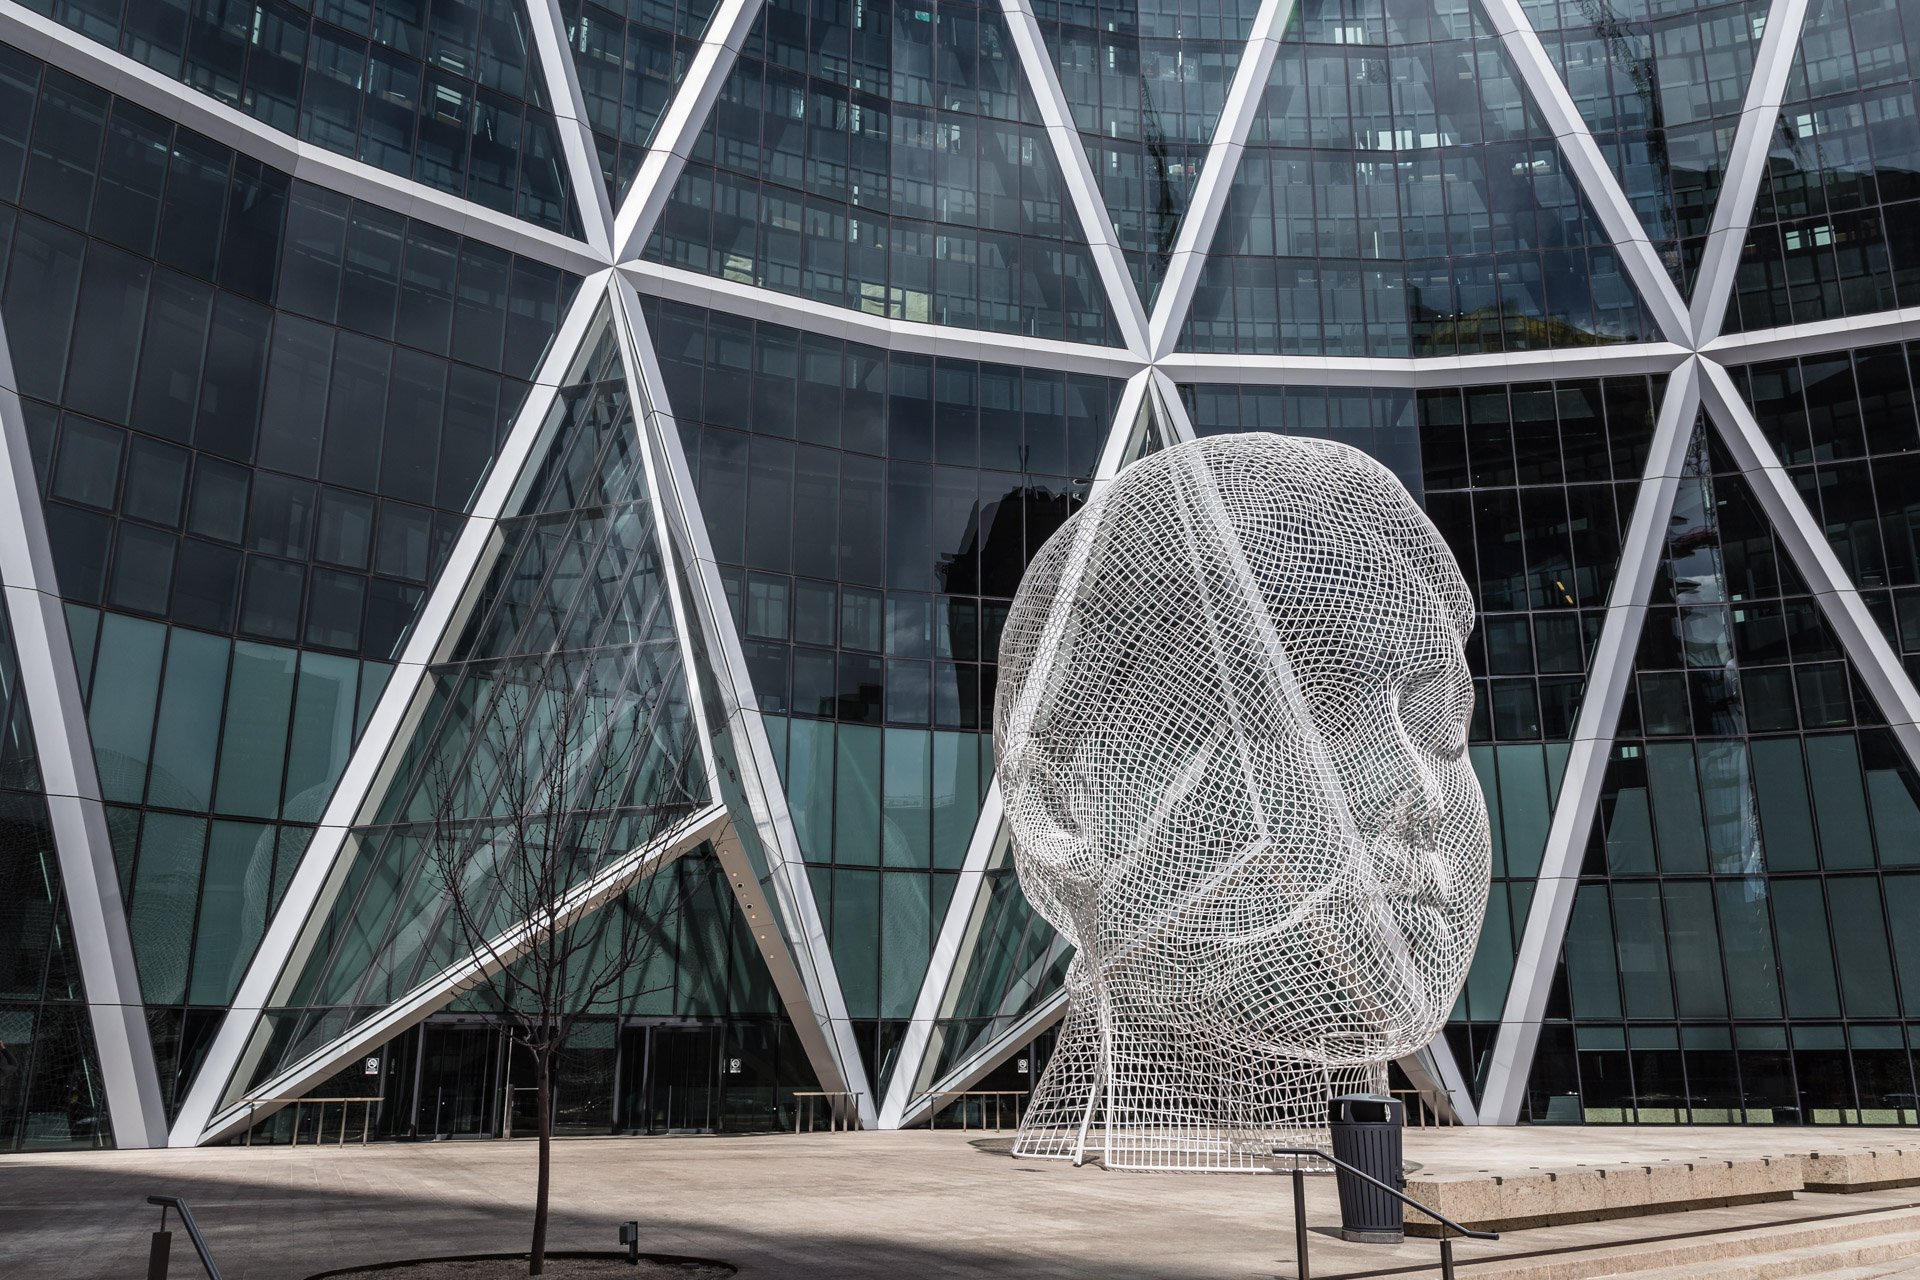 The Wonderland Sculpture In Downtown Calgary